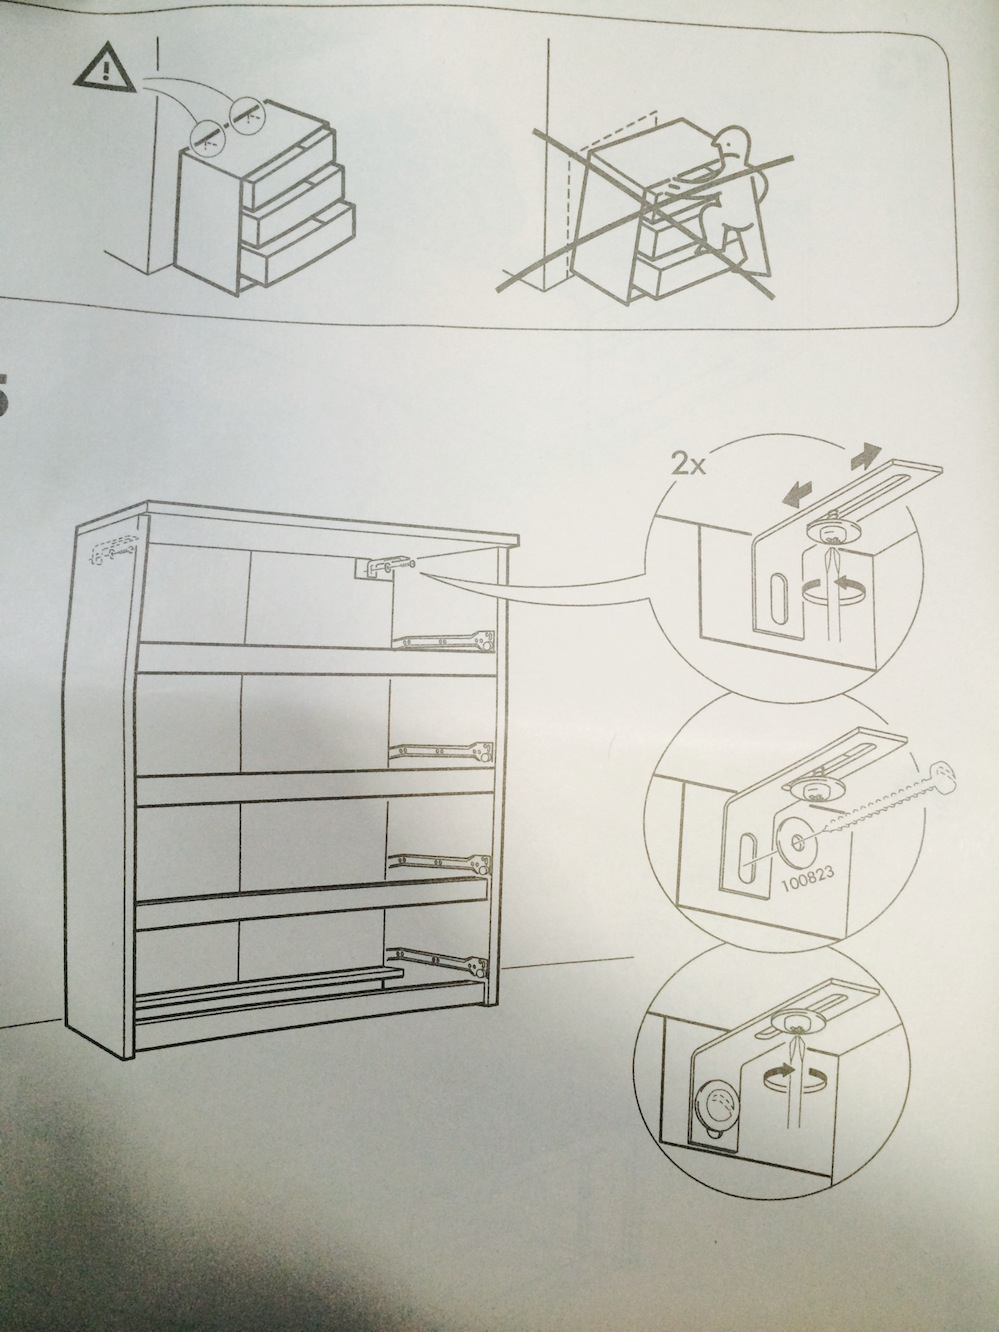 MALM install assembly instruction